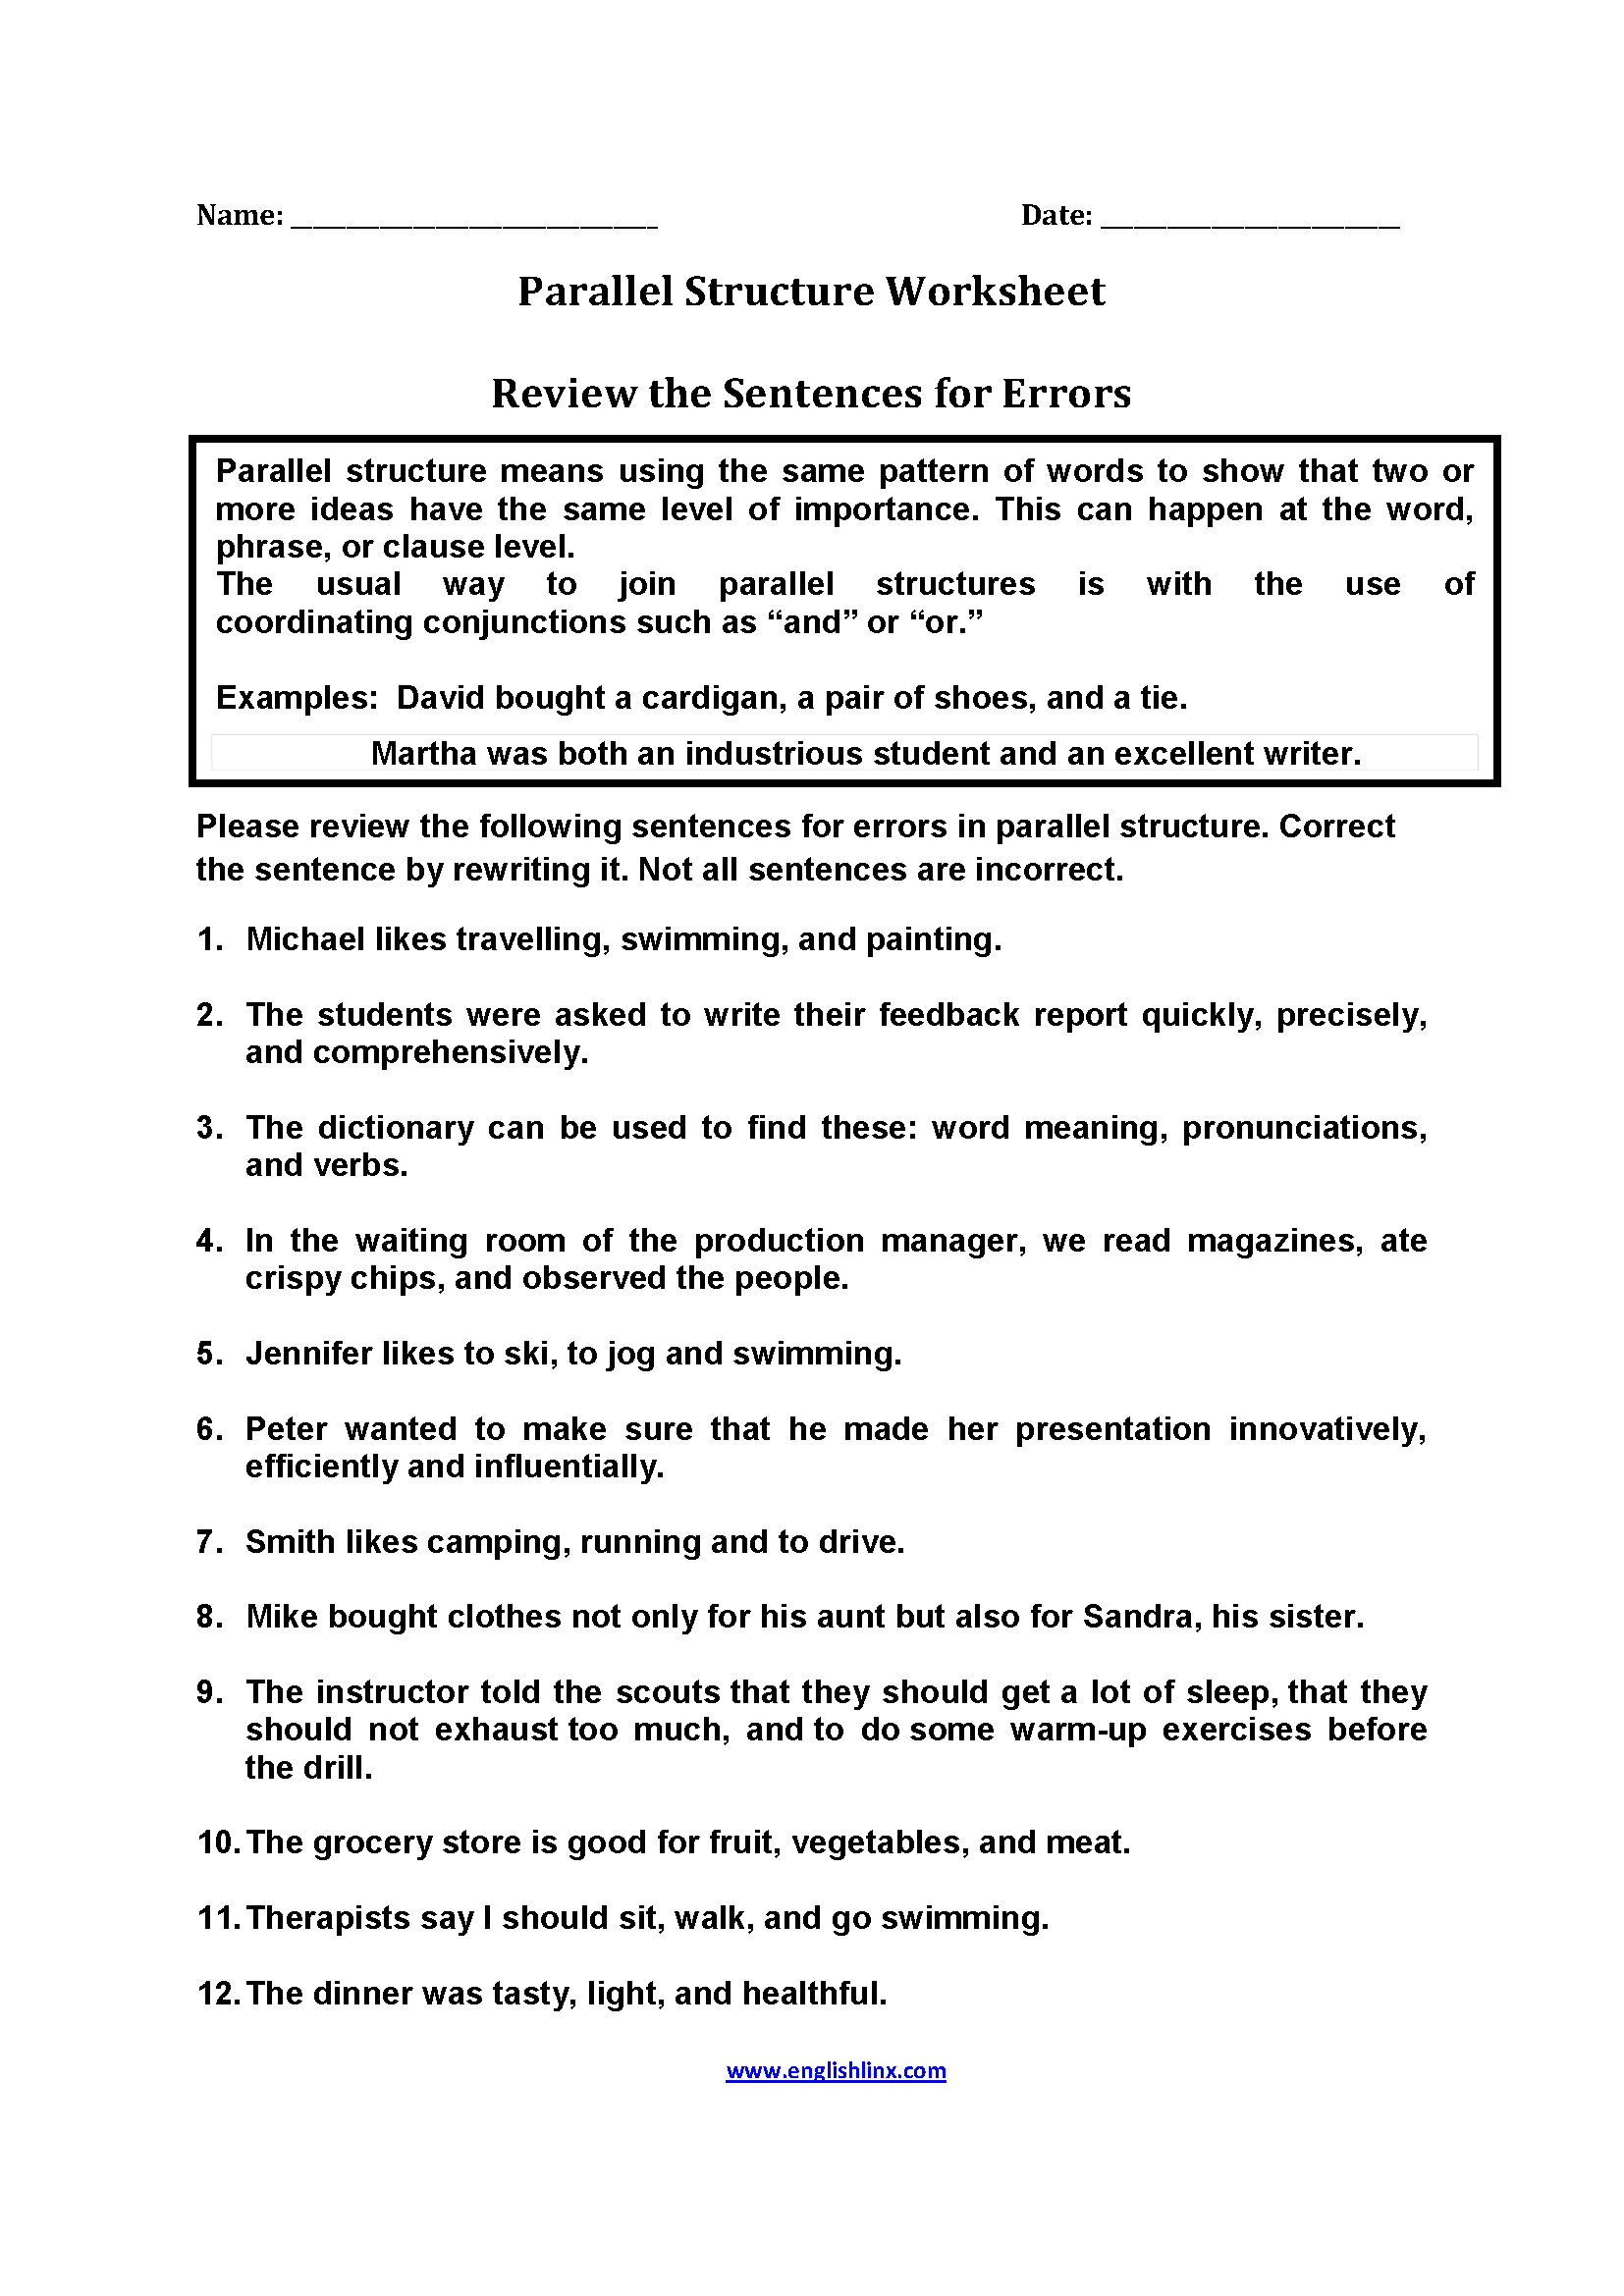 Review Sentences for Errors Parallel Structure Worksheets | Write it ...